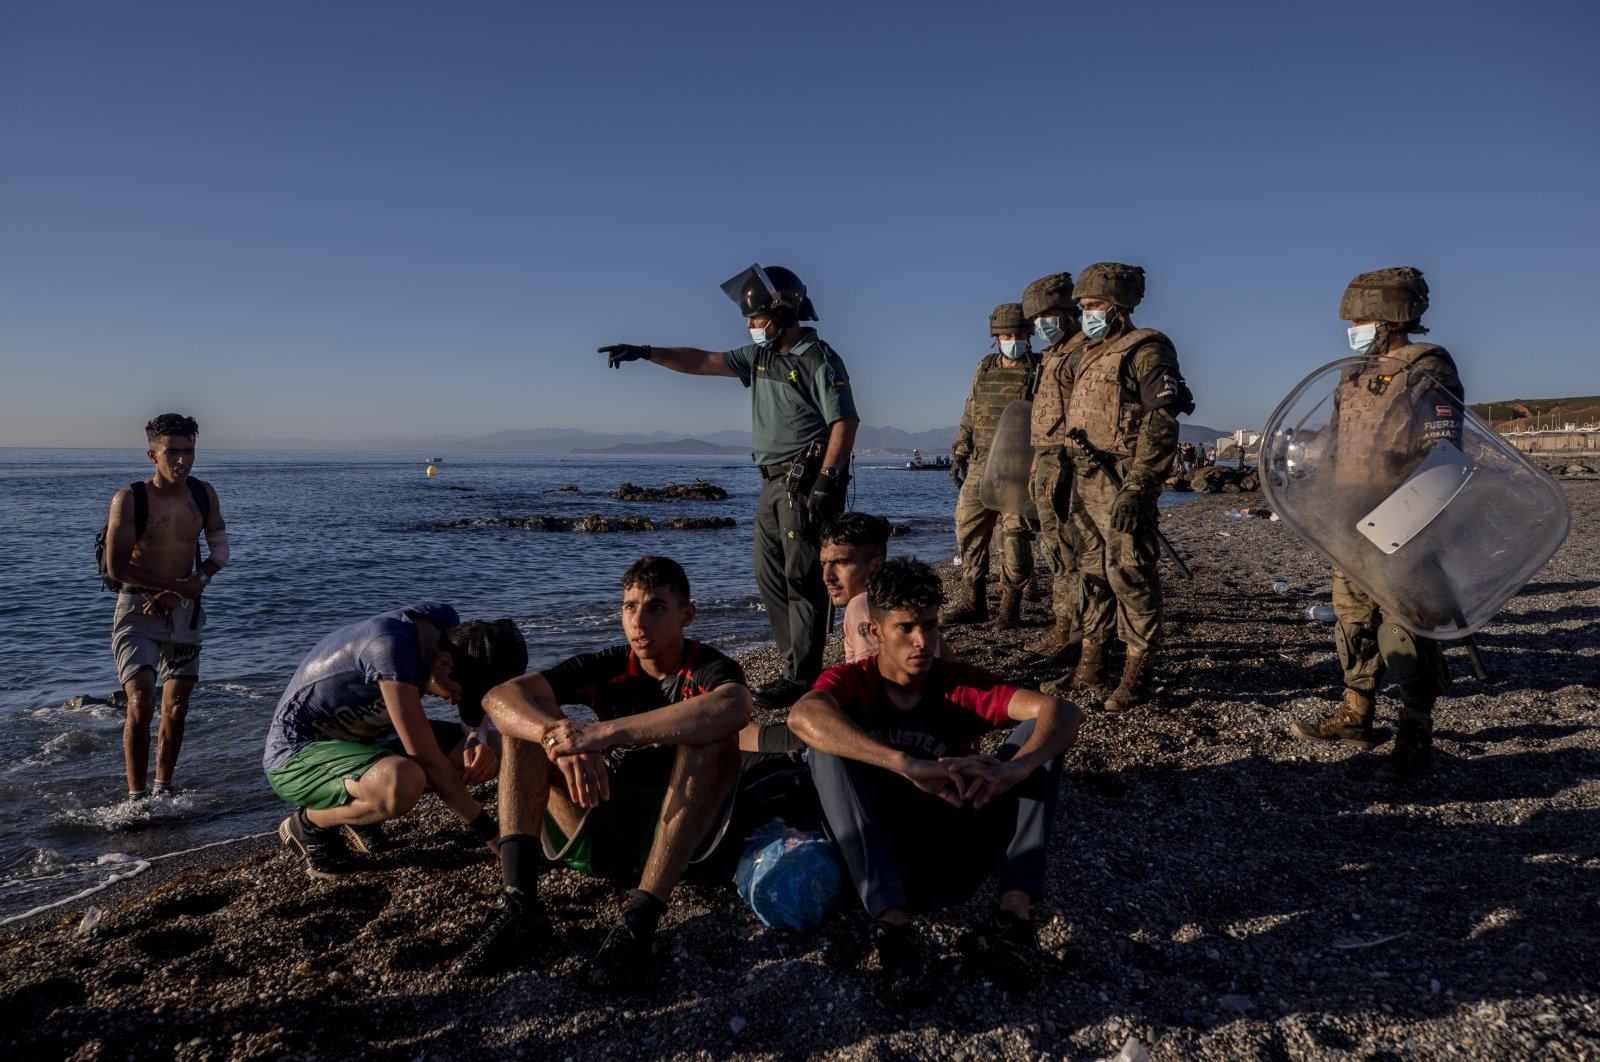 Migrants are surrounded by Spanish security forces on a beach after arriving at the Spanish enclave of Ceuta, near the border of Morocco and Spain, May 19, 2021. (AP Photo)